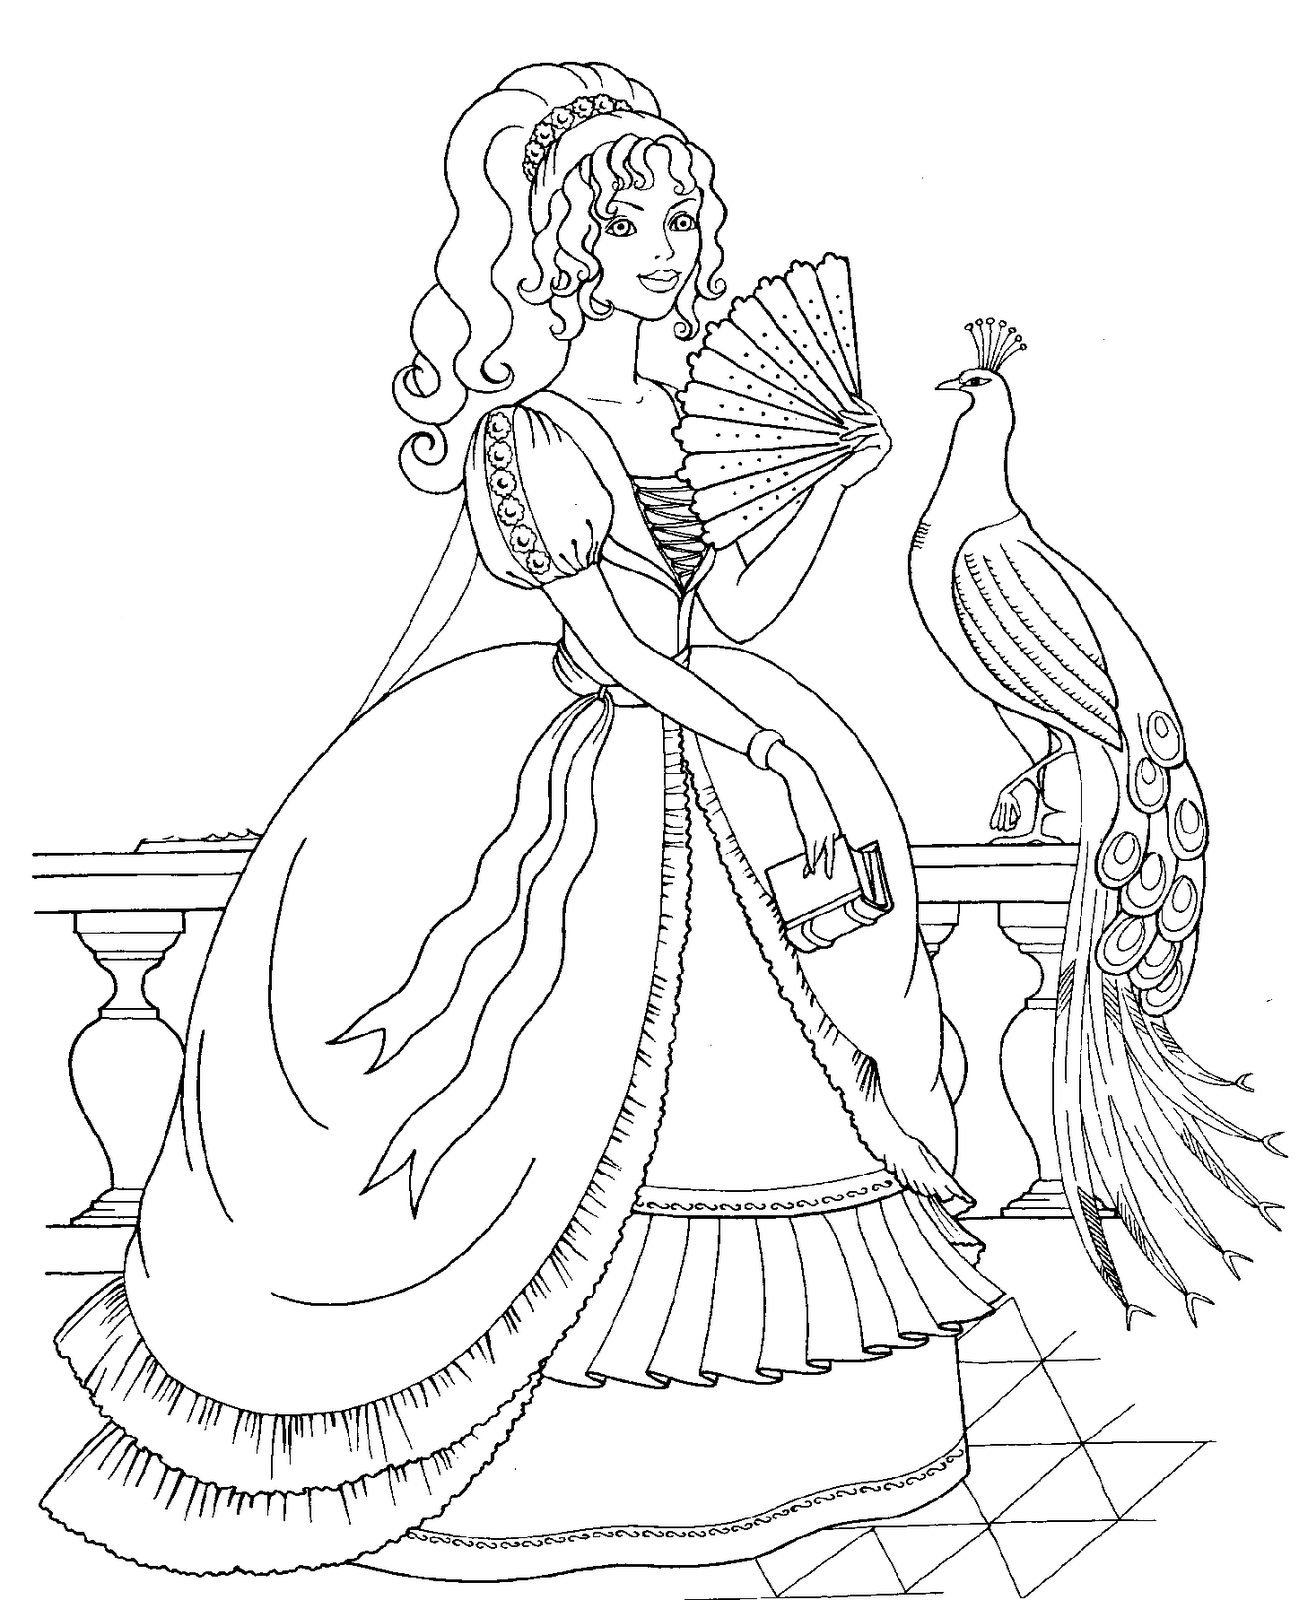 Disney Princess Coloring Pages 30 Free Printable Coloring Pages